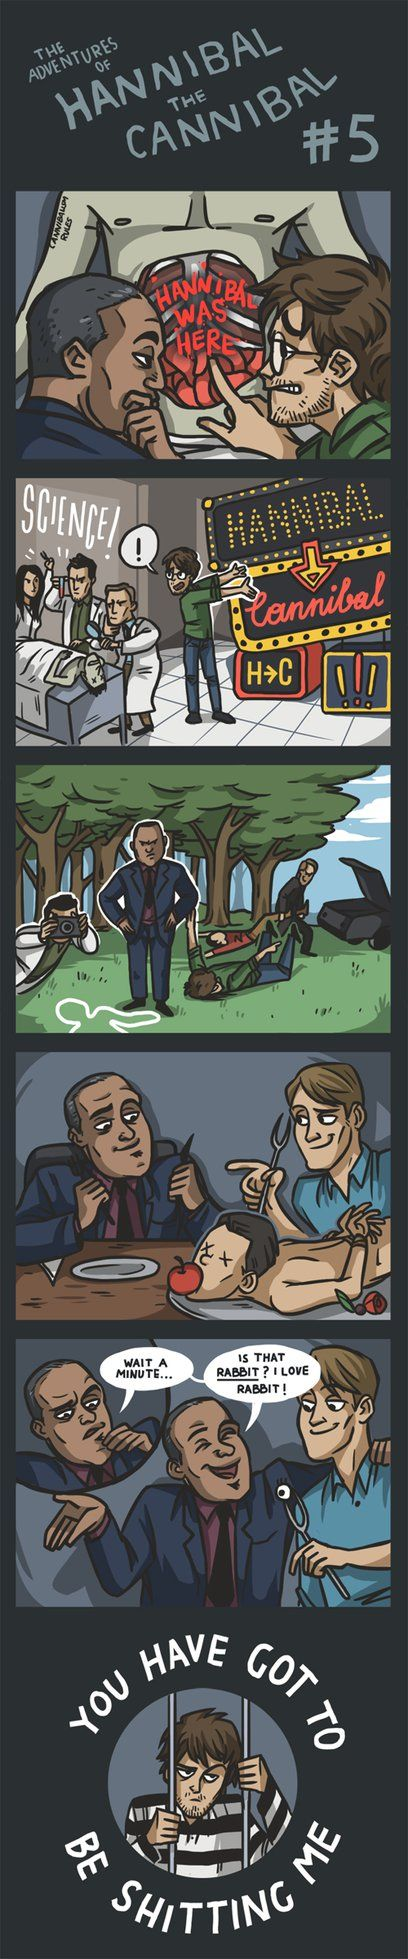 The Adventures of Hannibal the Cannibal #5 by ekzotik on deviantART